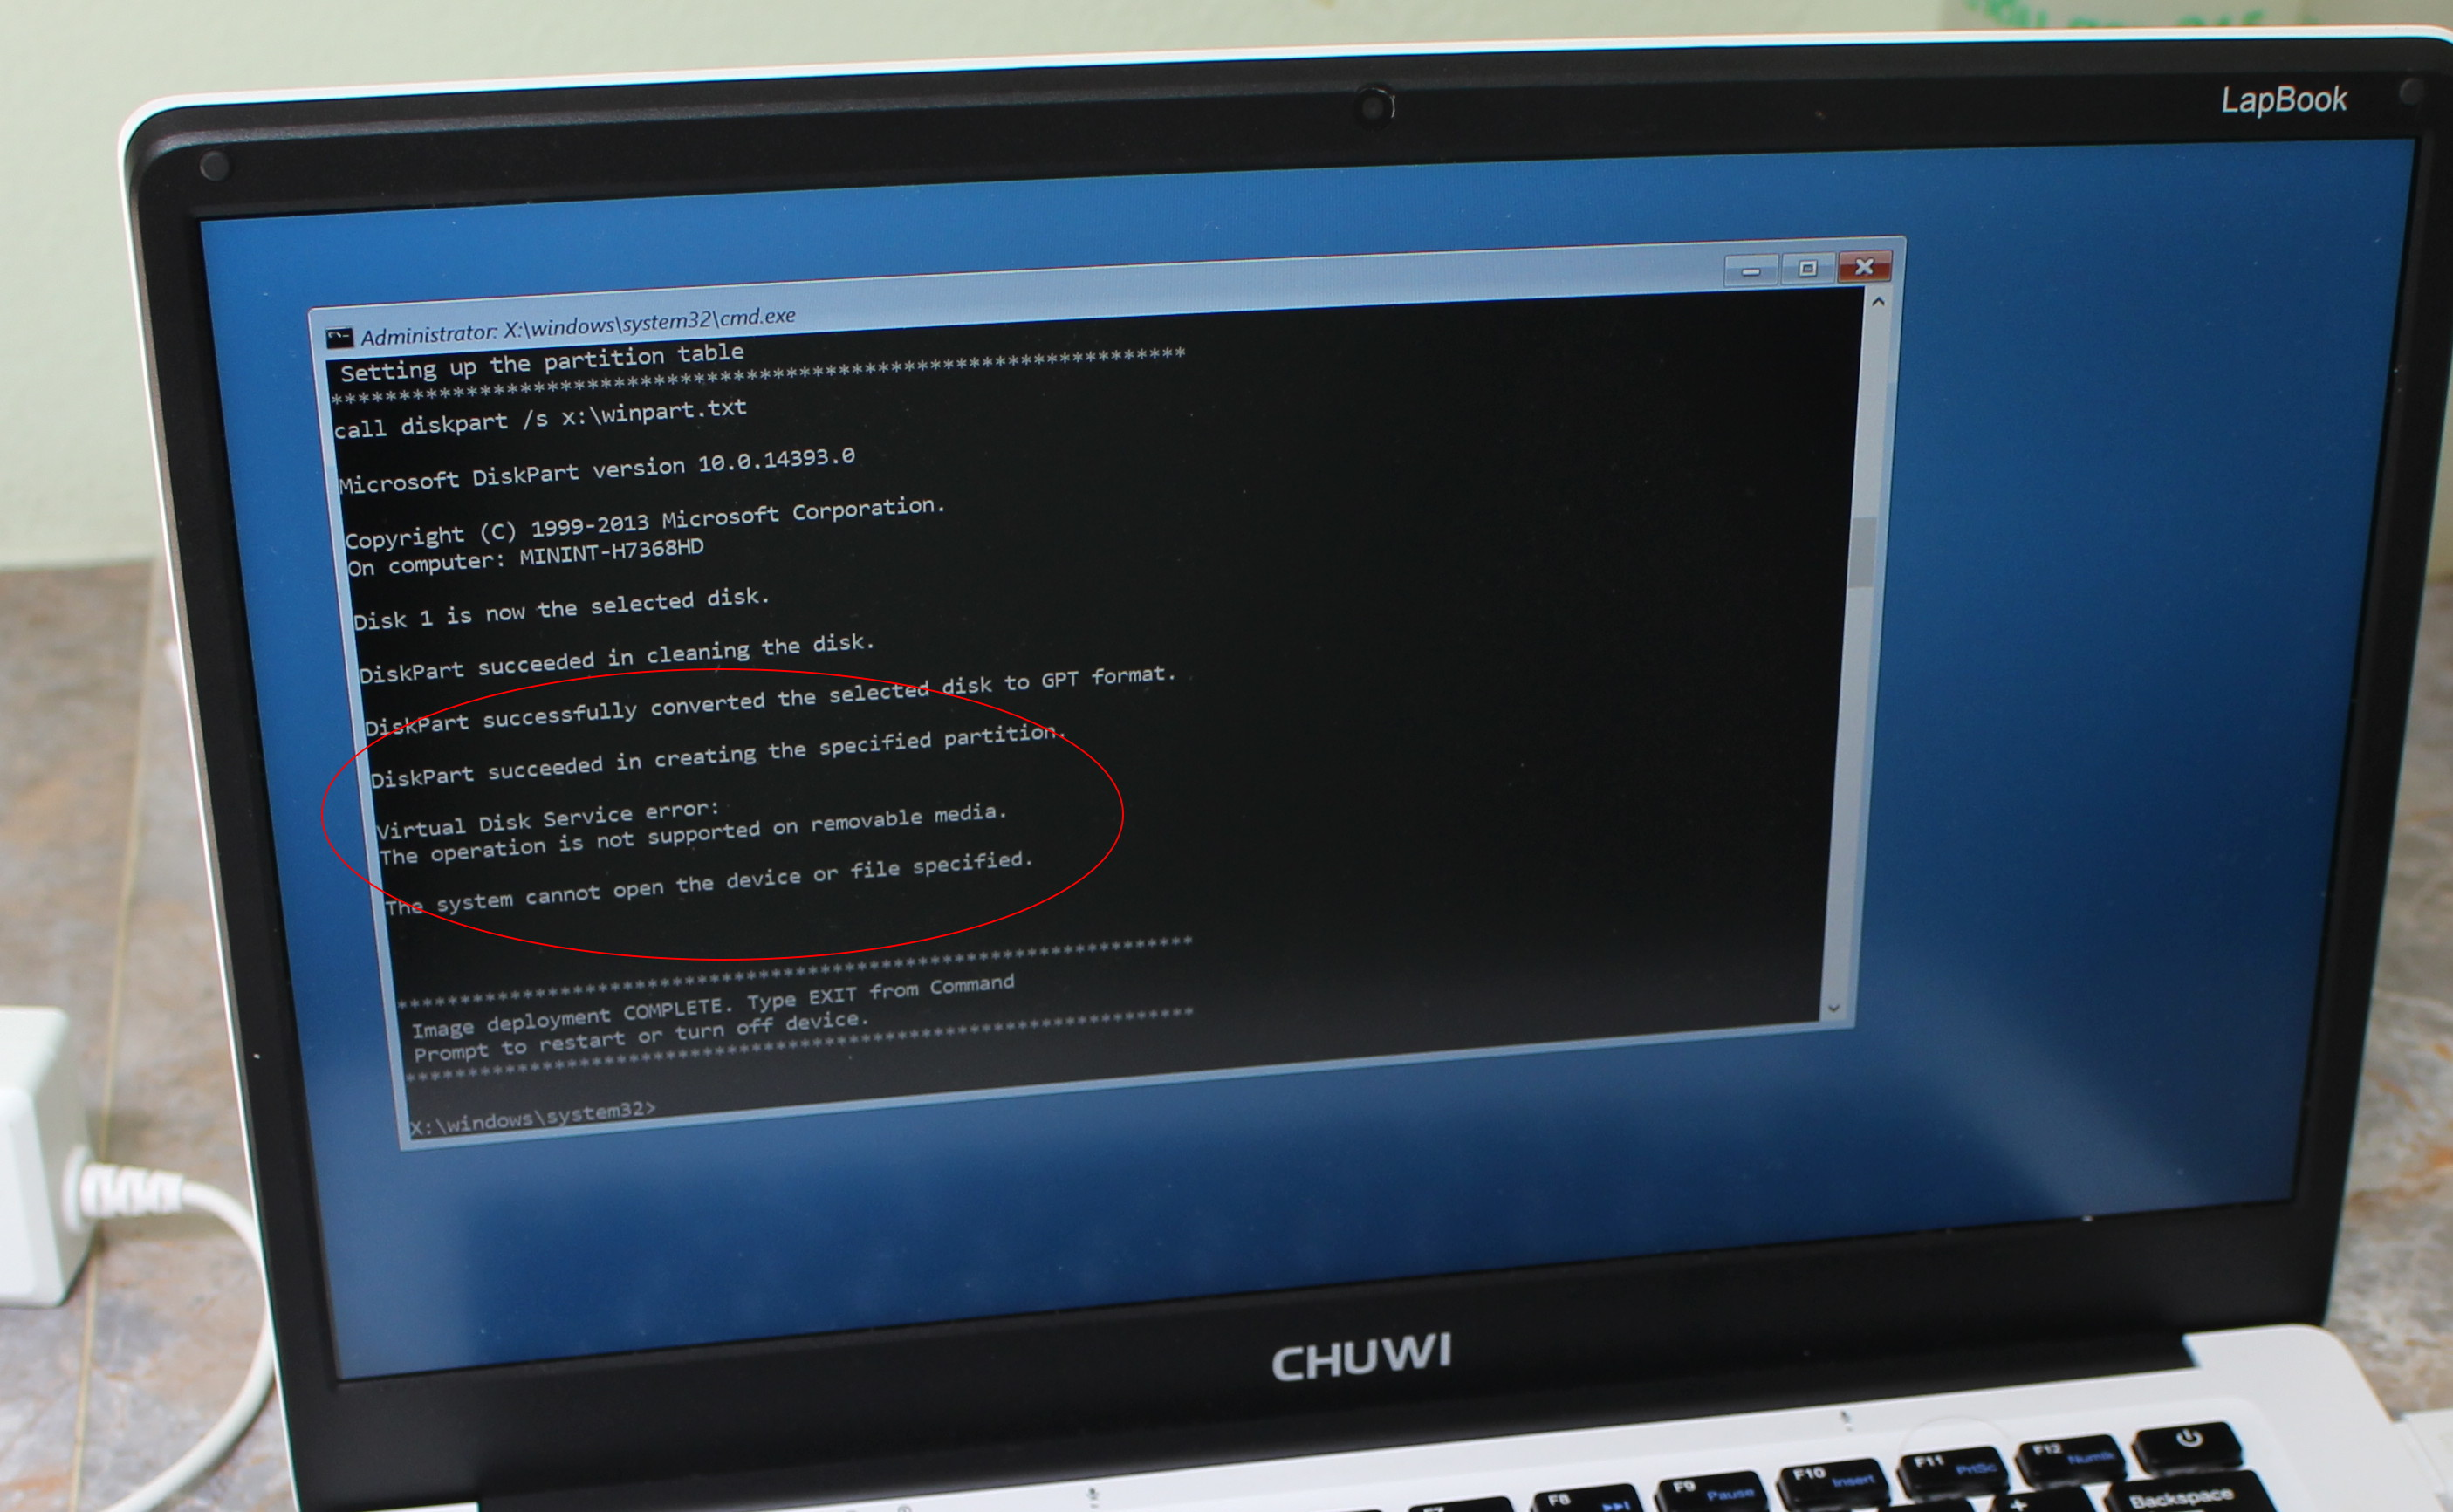 Chuwi lapbook 14 1 windows 10 firmware drivers and bios for Windows installer